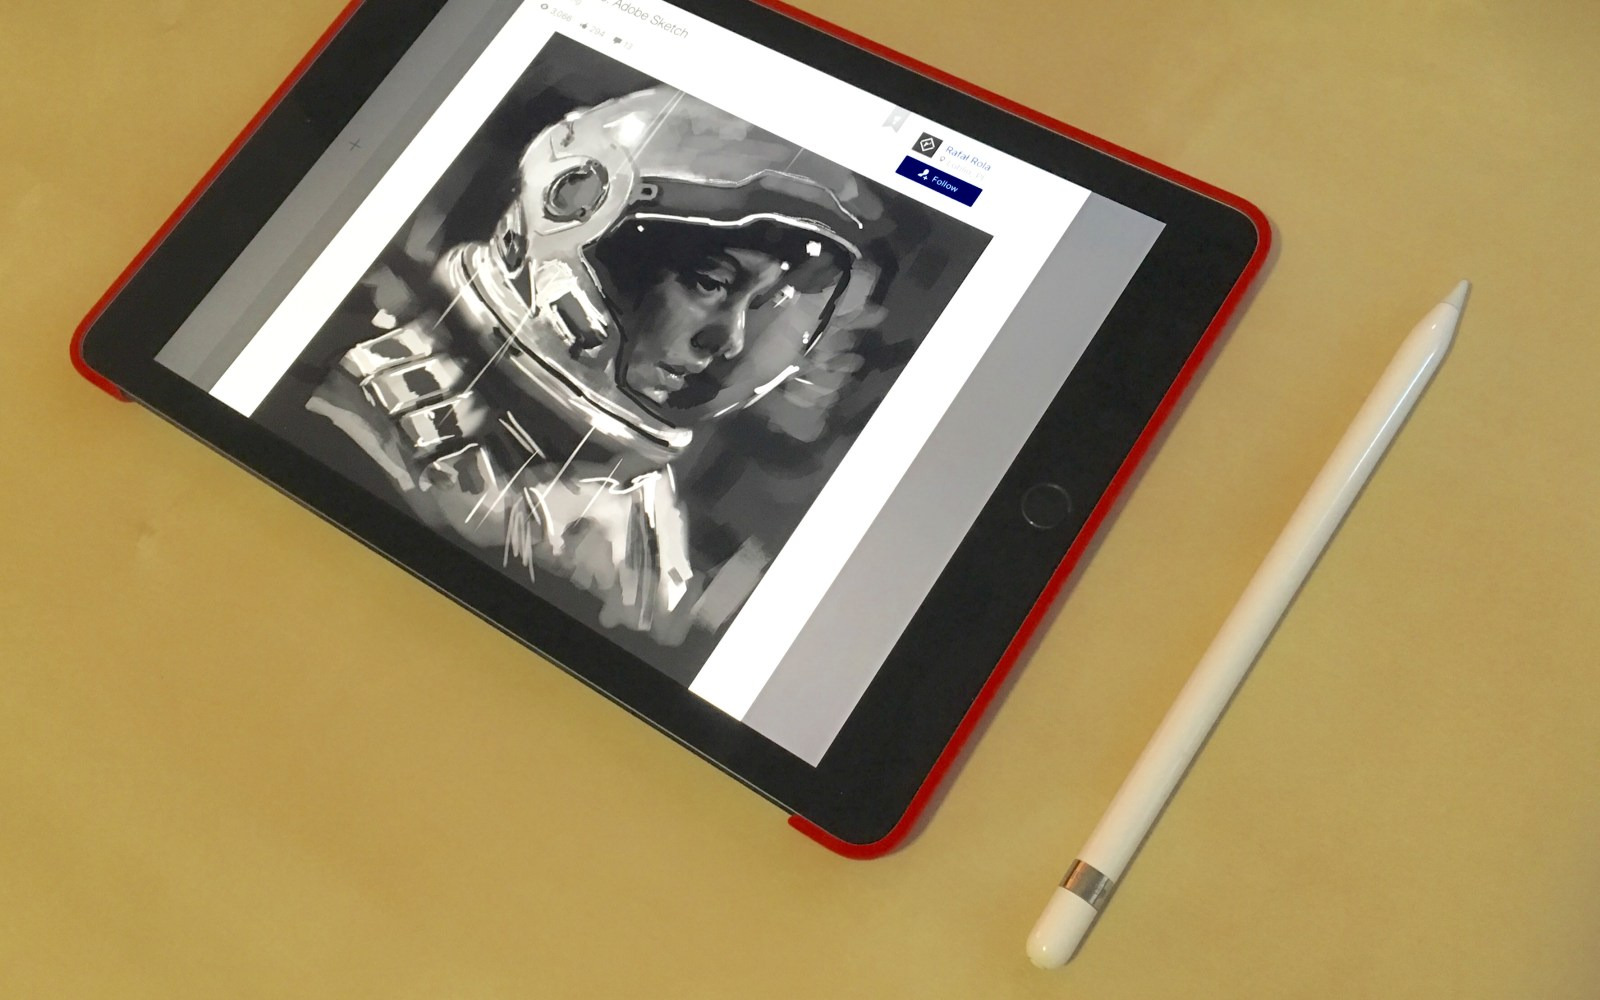 Adobe Photoshop Sketch for iOS gains layer support, new 3D Touch features